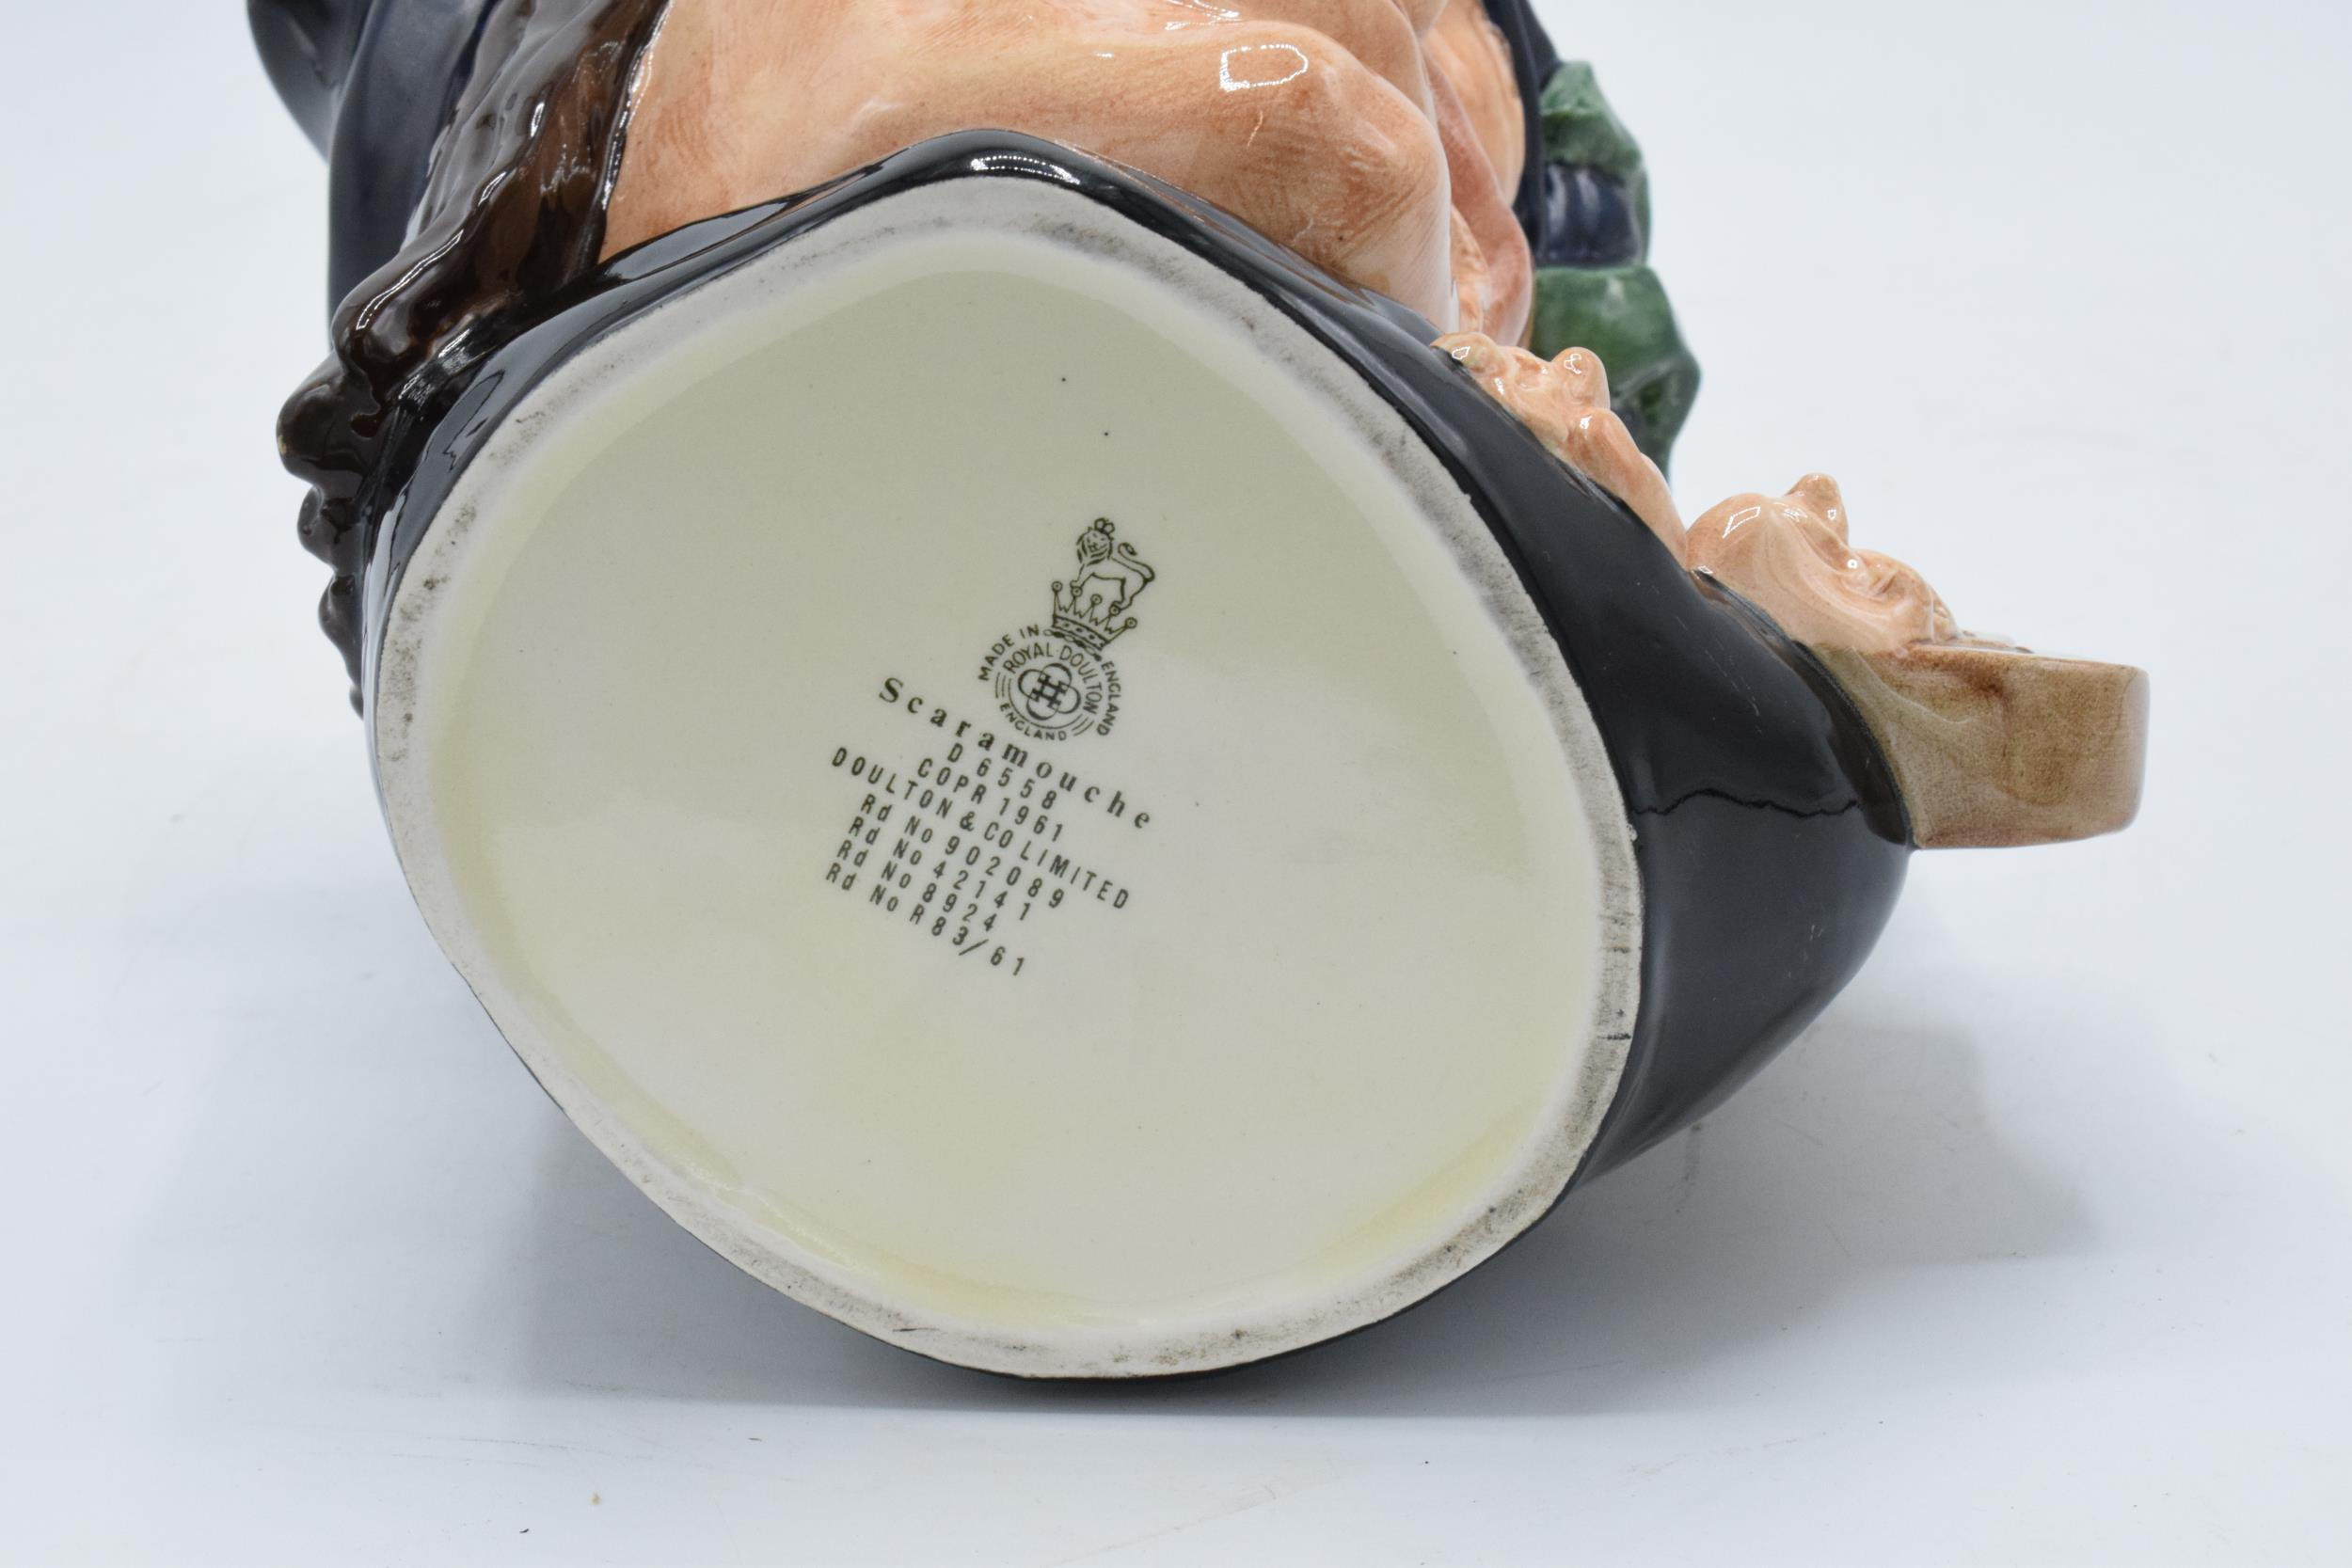 Large Royal Doulton character jug Scaramouche D6558. In good condition with no obvious damage or - Image 3 of 3